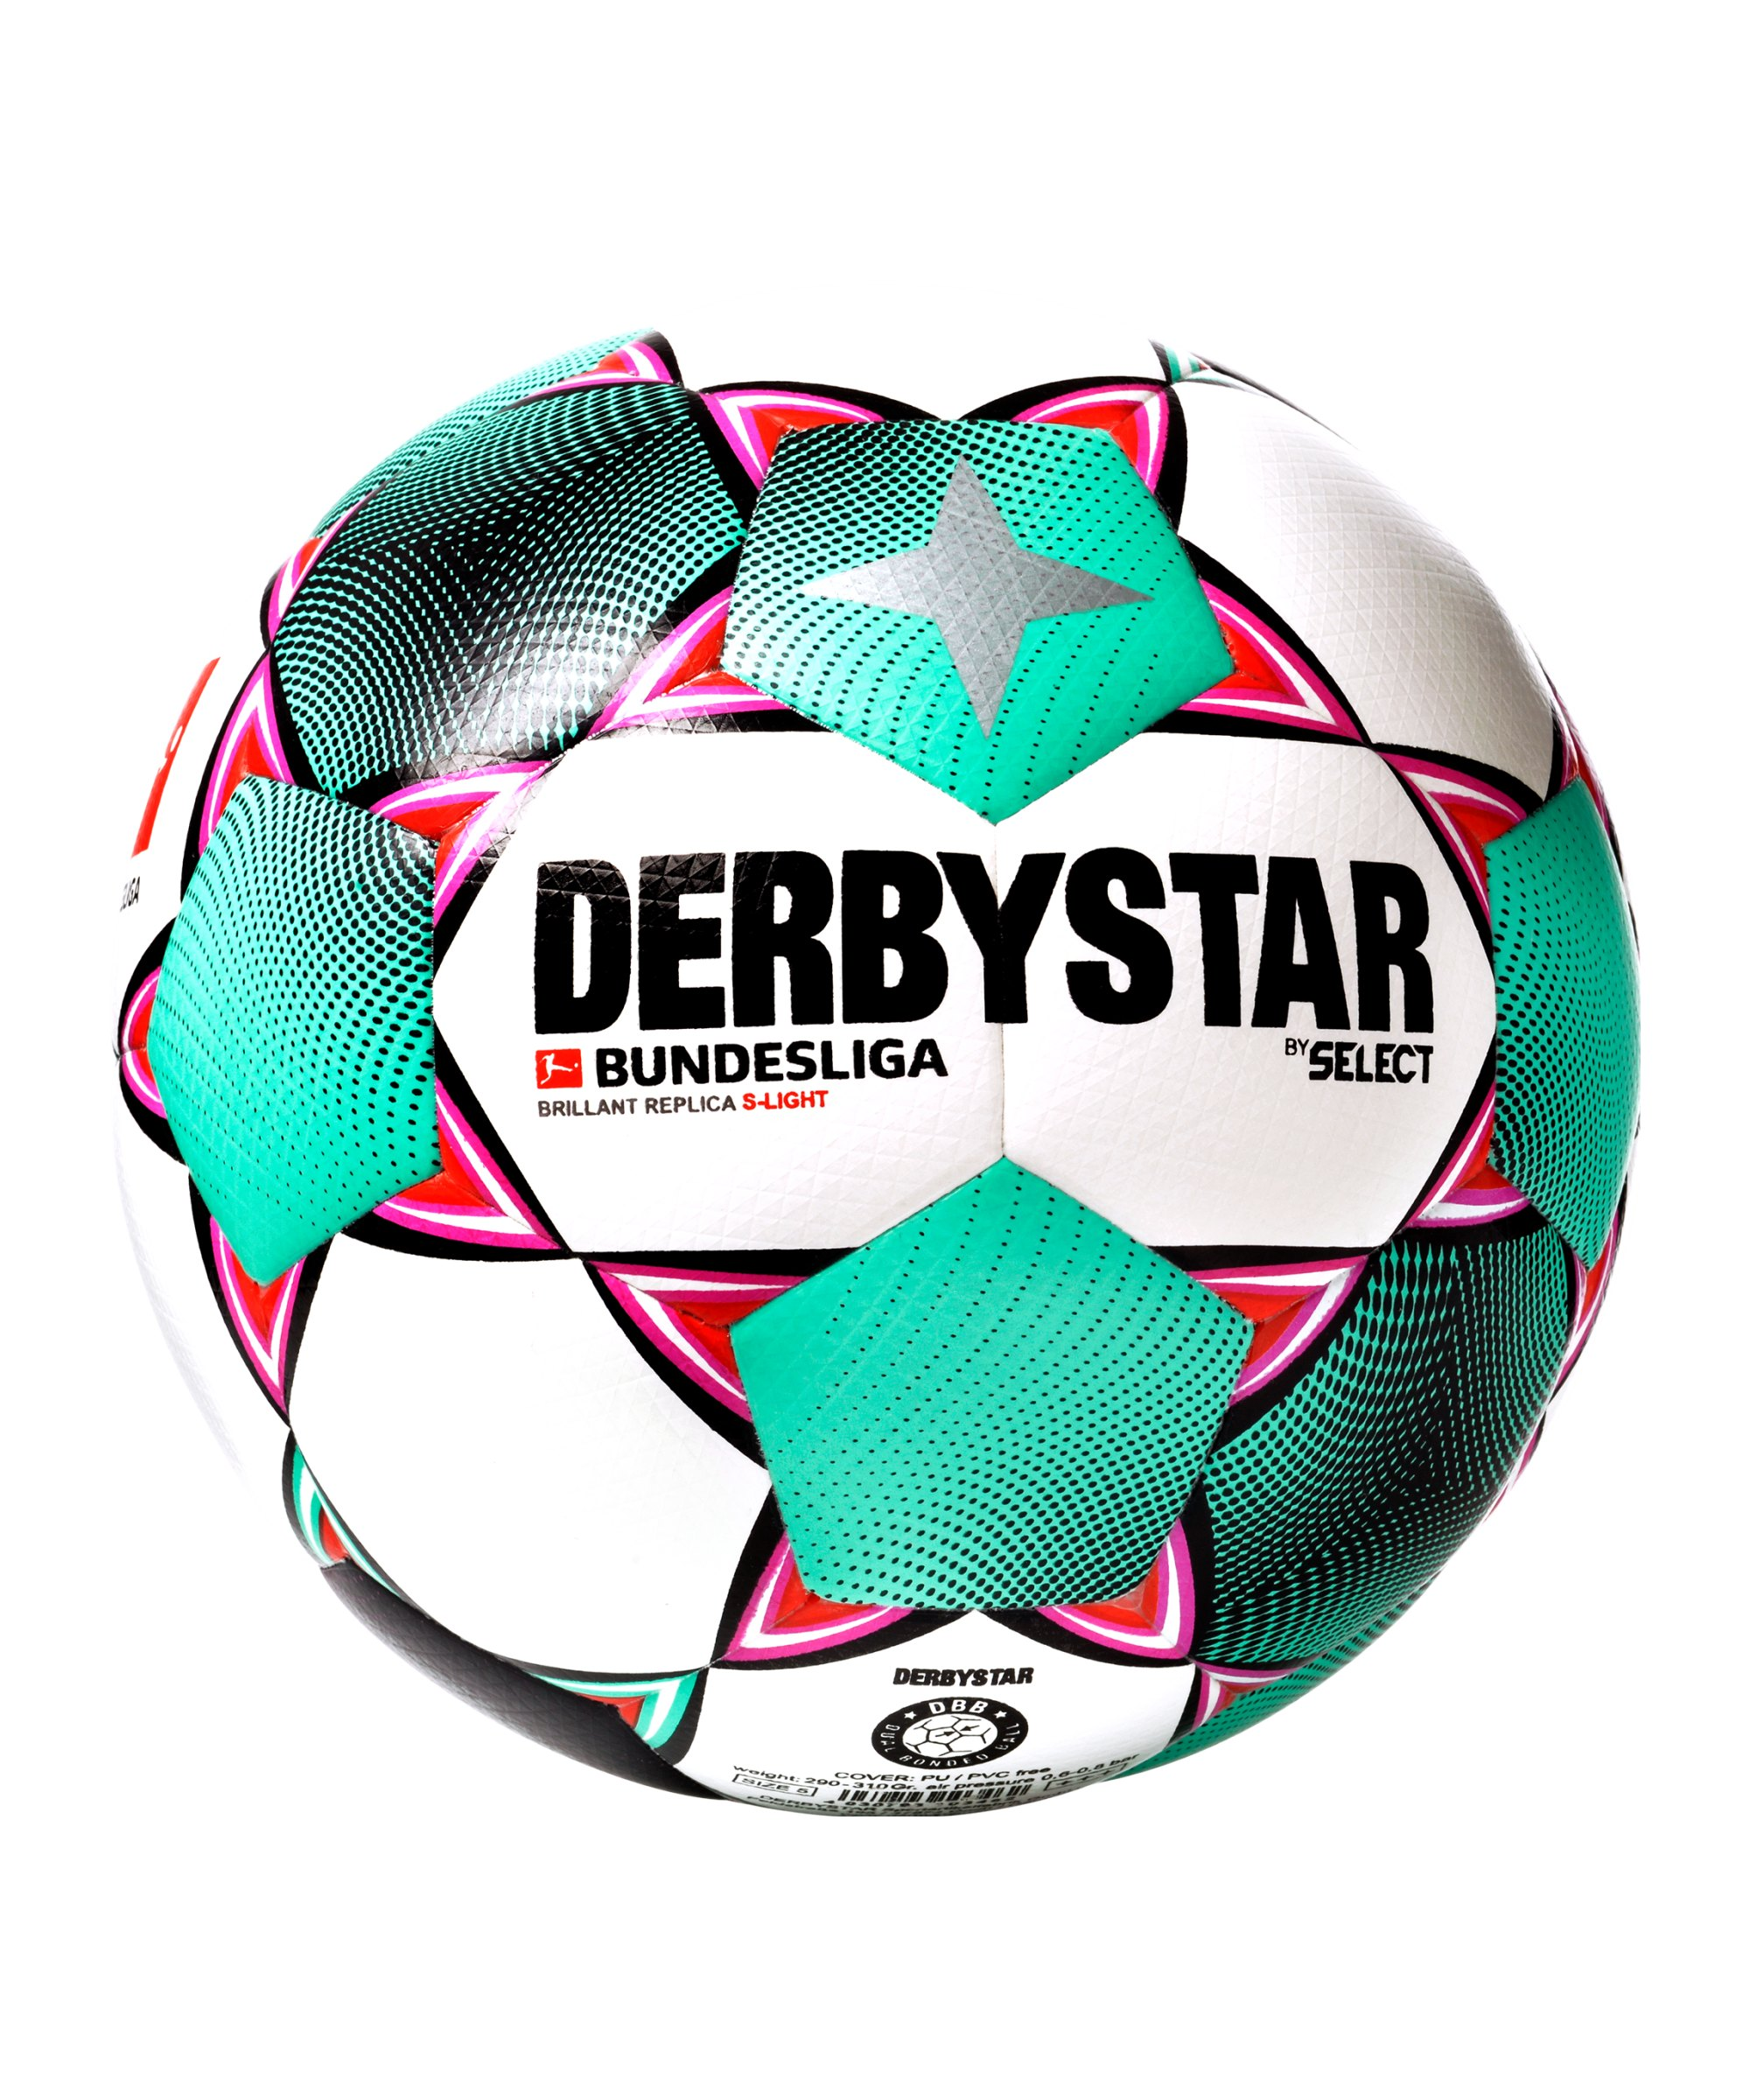 Derbystar BL Brillant Replica SLight Trainingsball Weiss F020 - weiss